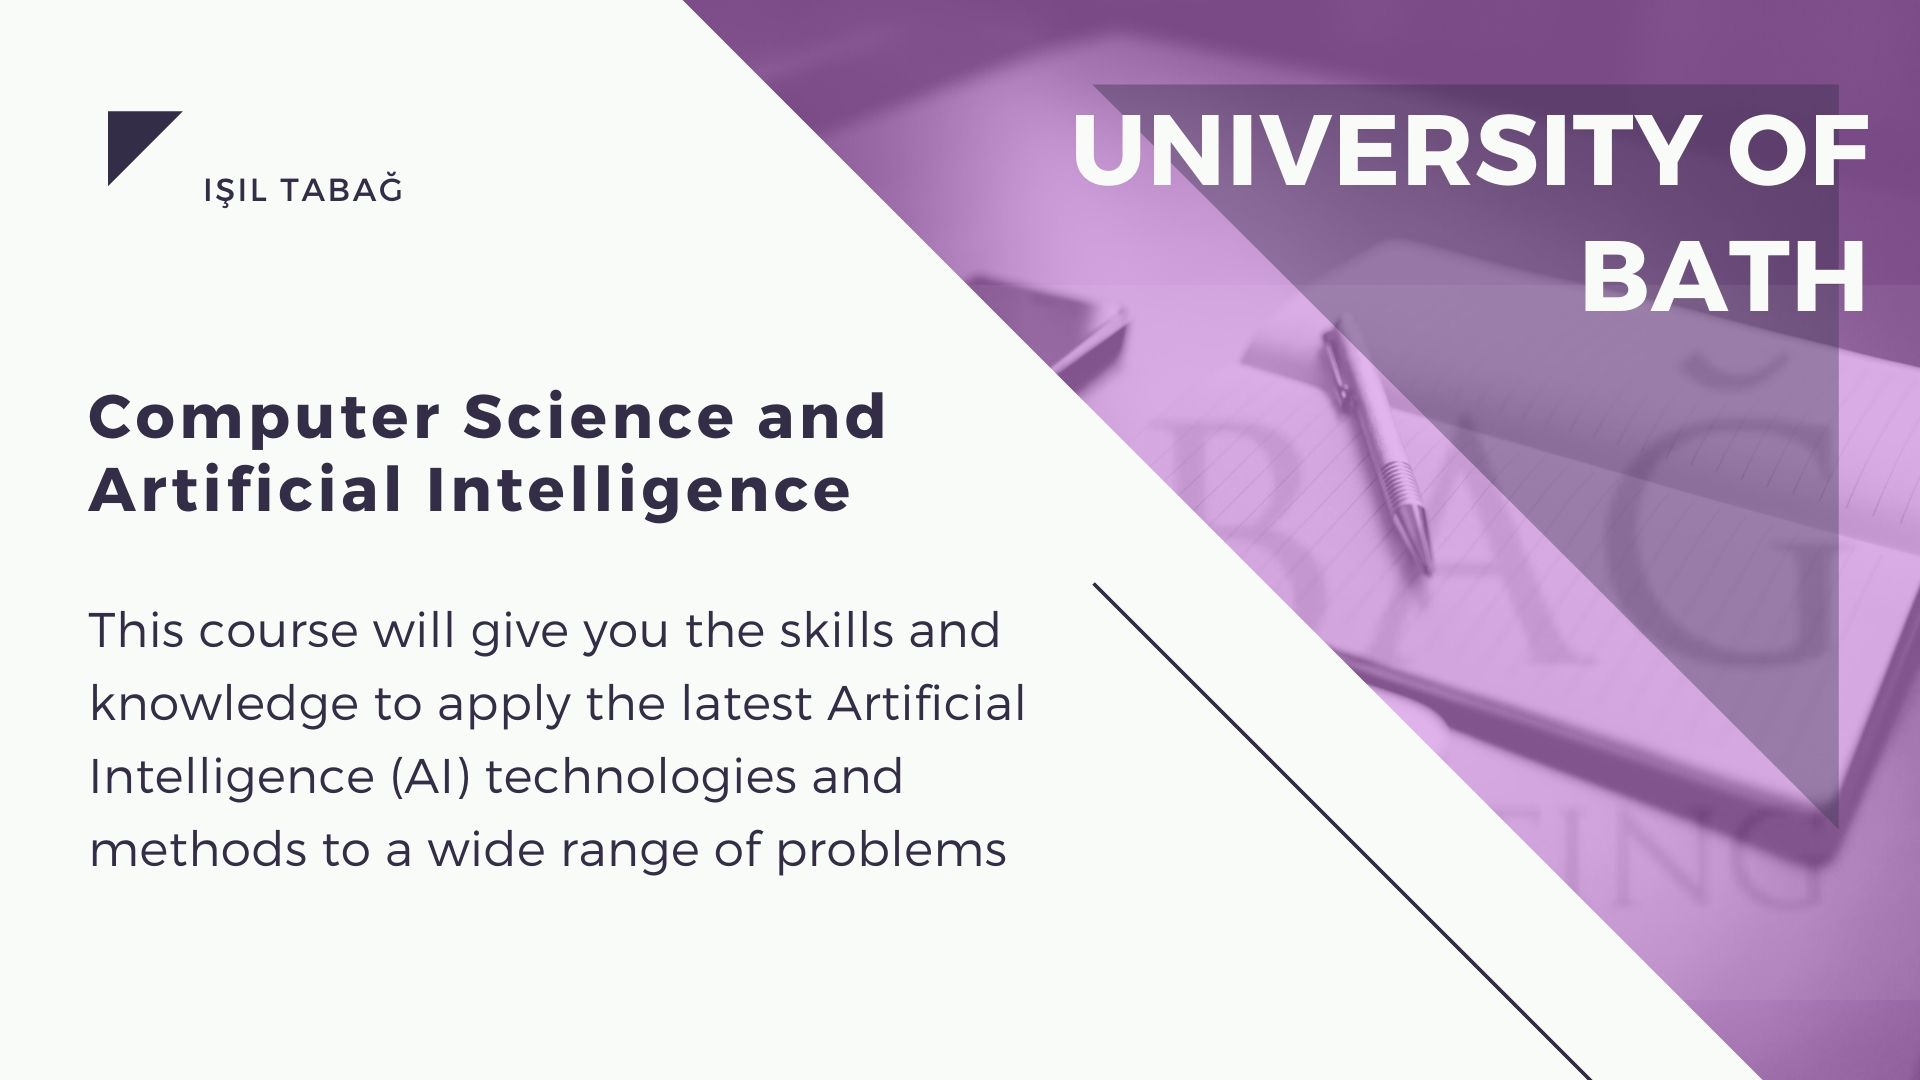 University of Bath computer science artificial intelligence